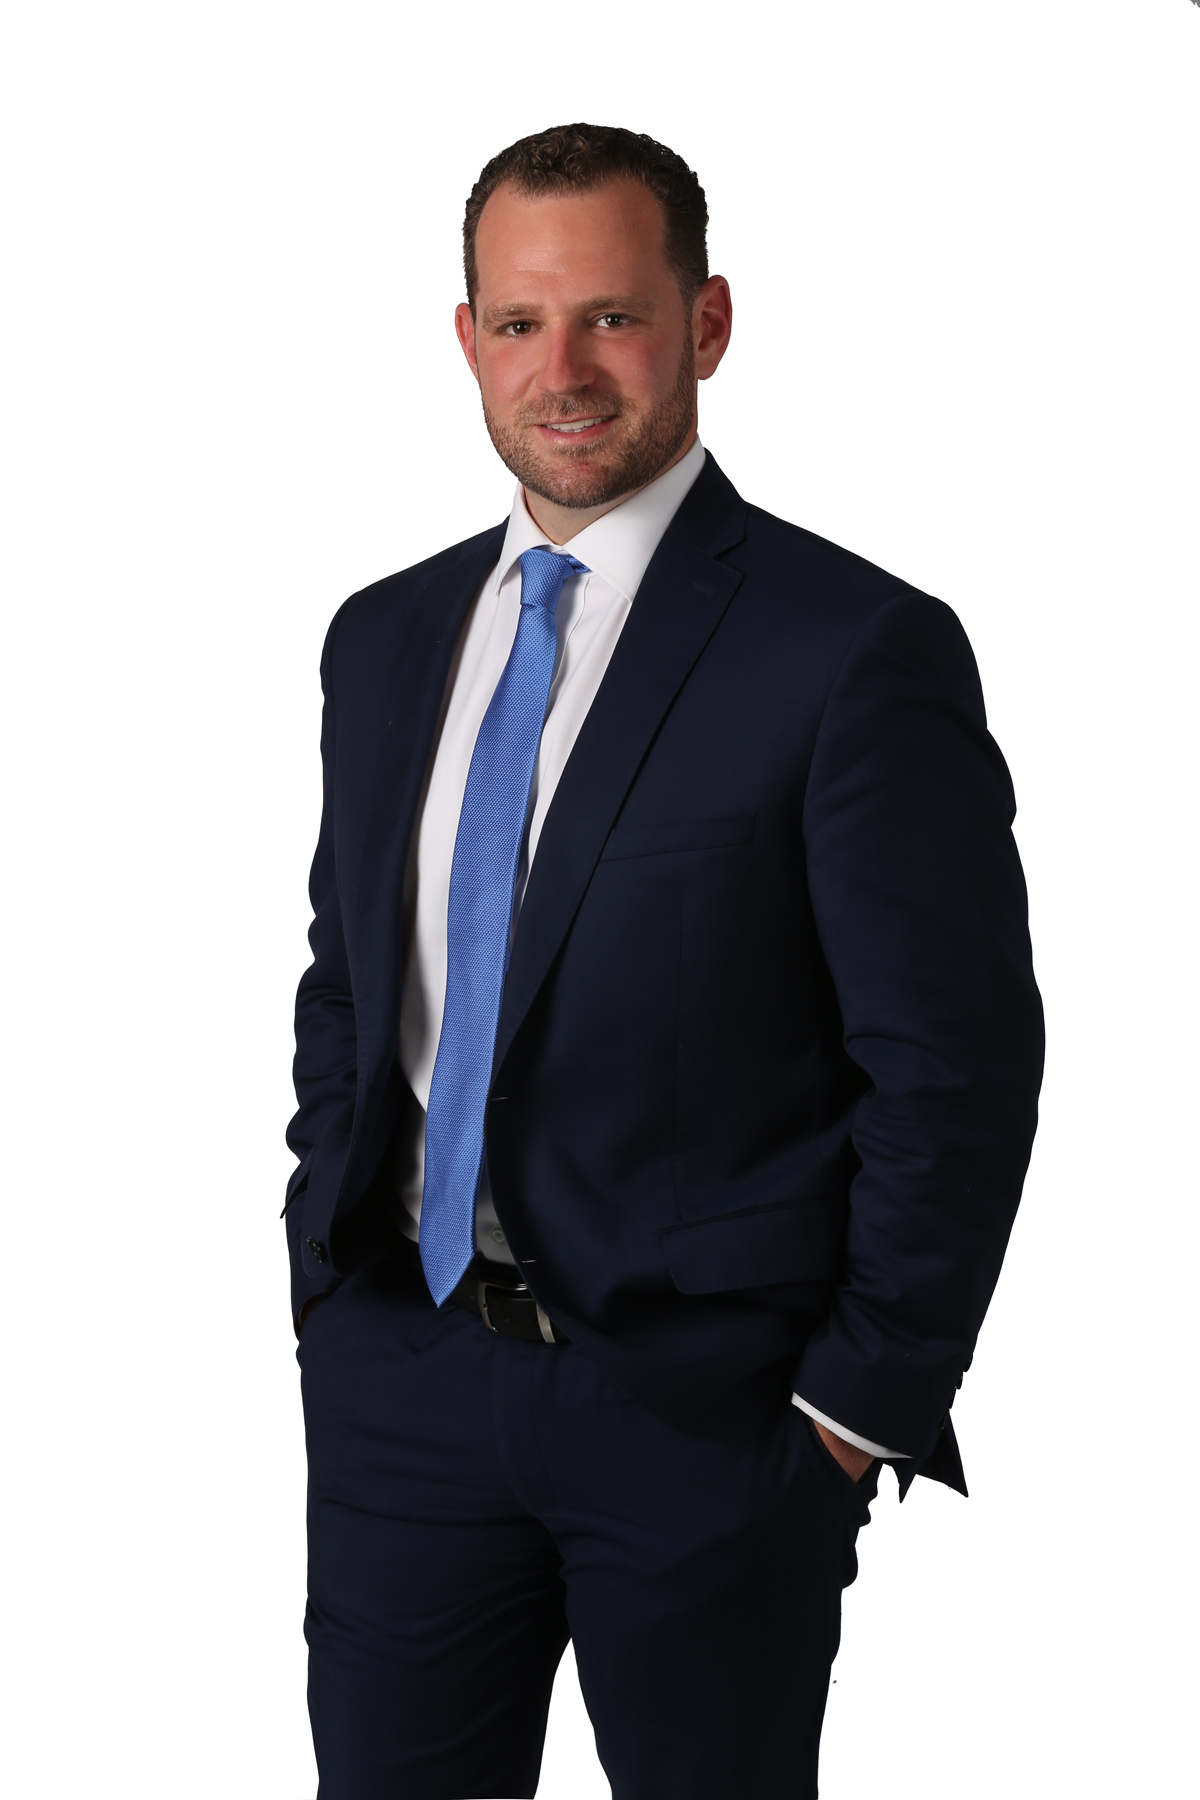 Lawyer Matthew Waring